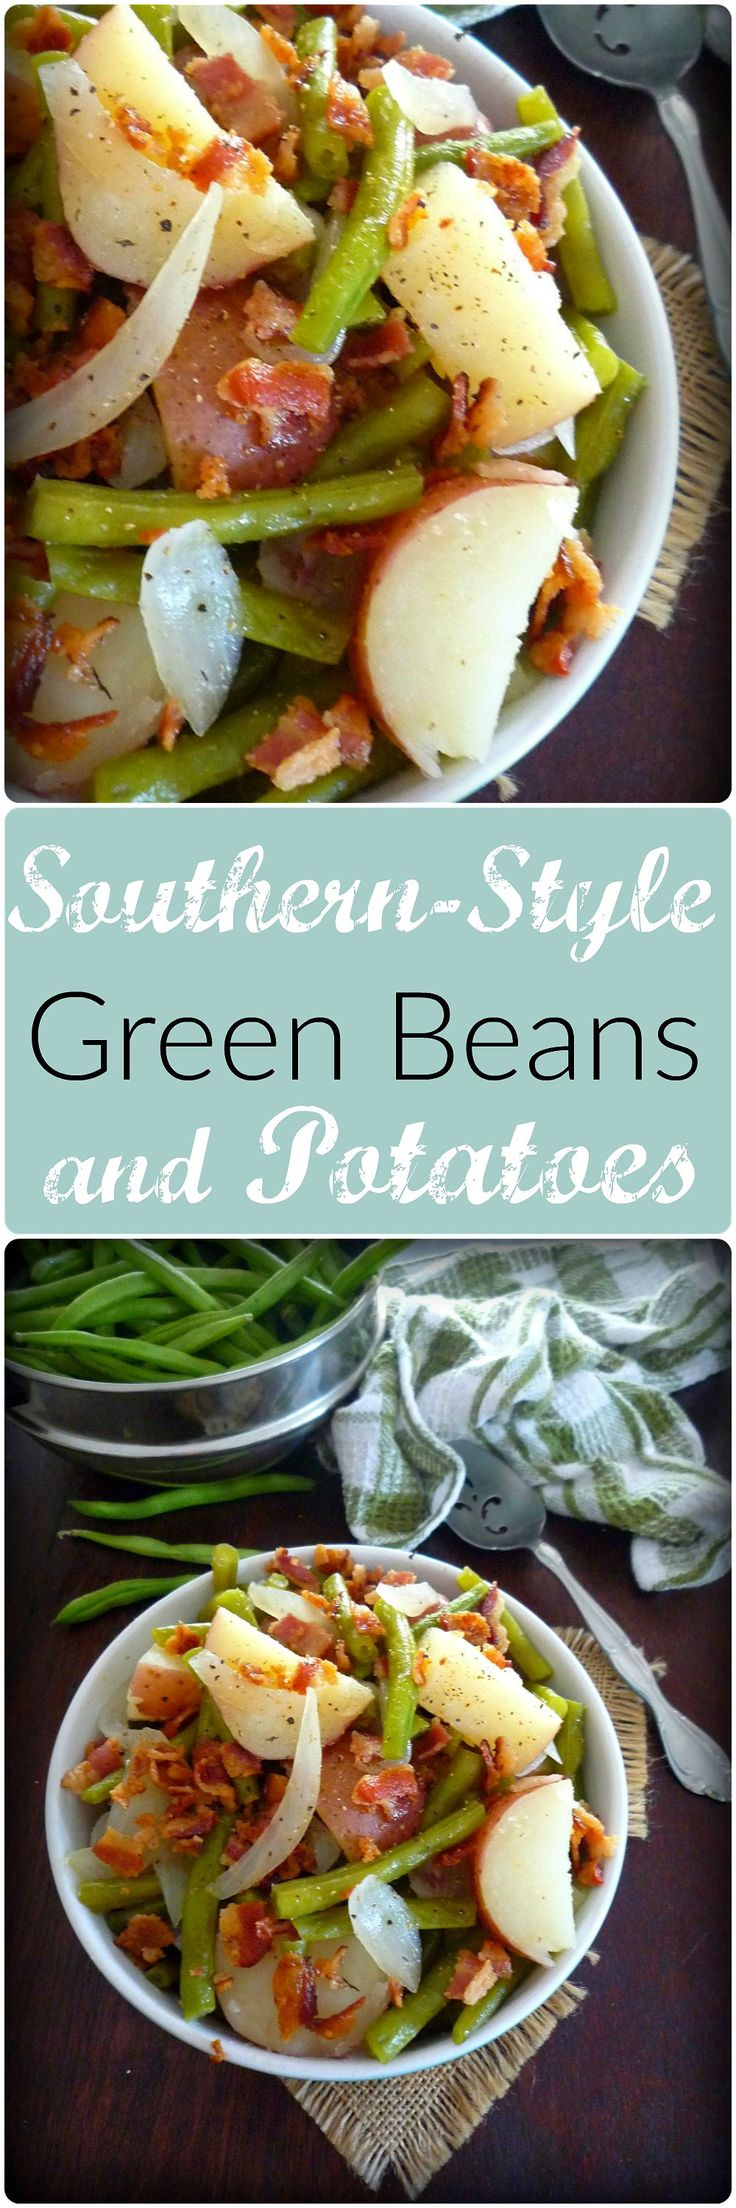 This wonderful recipe for Southern-Style Green Beans and Red Potatoes is made with pure Southern love; combining freshly picked, vibrate green beans, sweet Vidalia onions, sliced red potatoes, and thick sliced hickory smoked bacon slowly cooked to perfection.